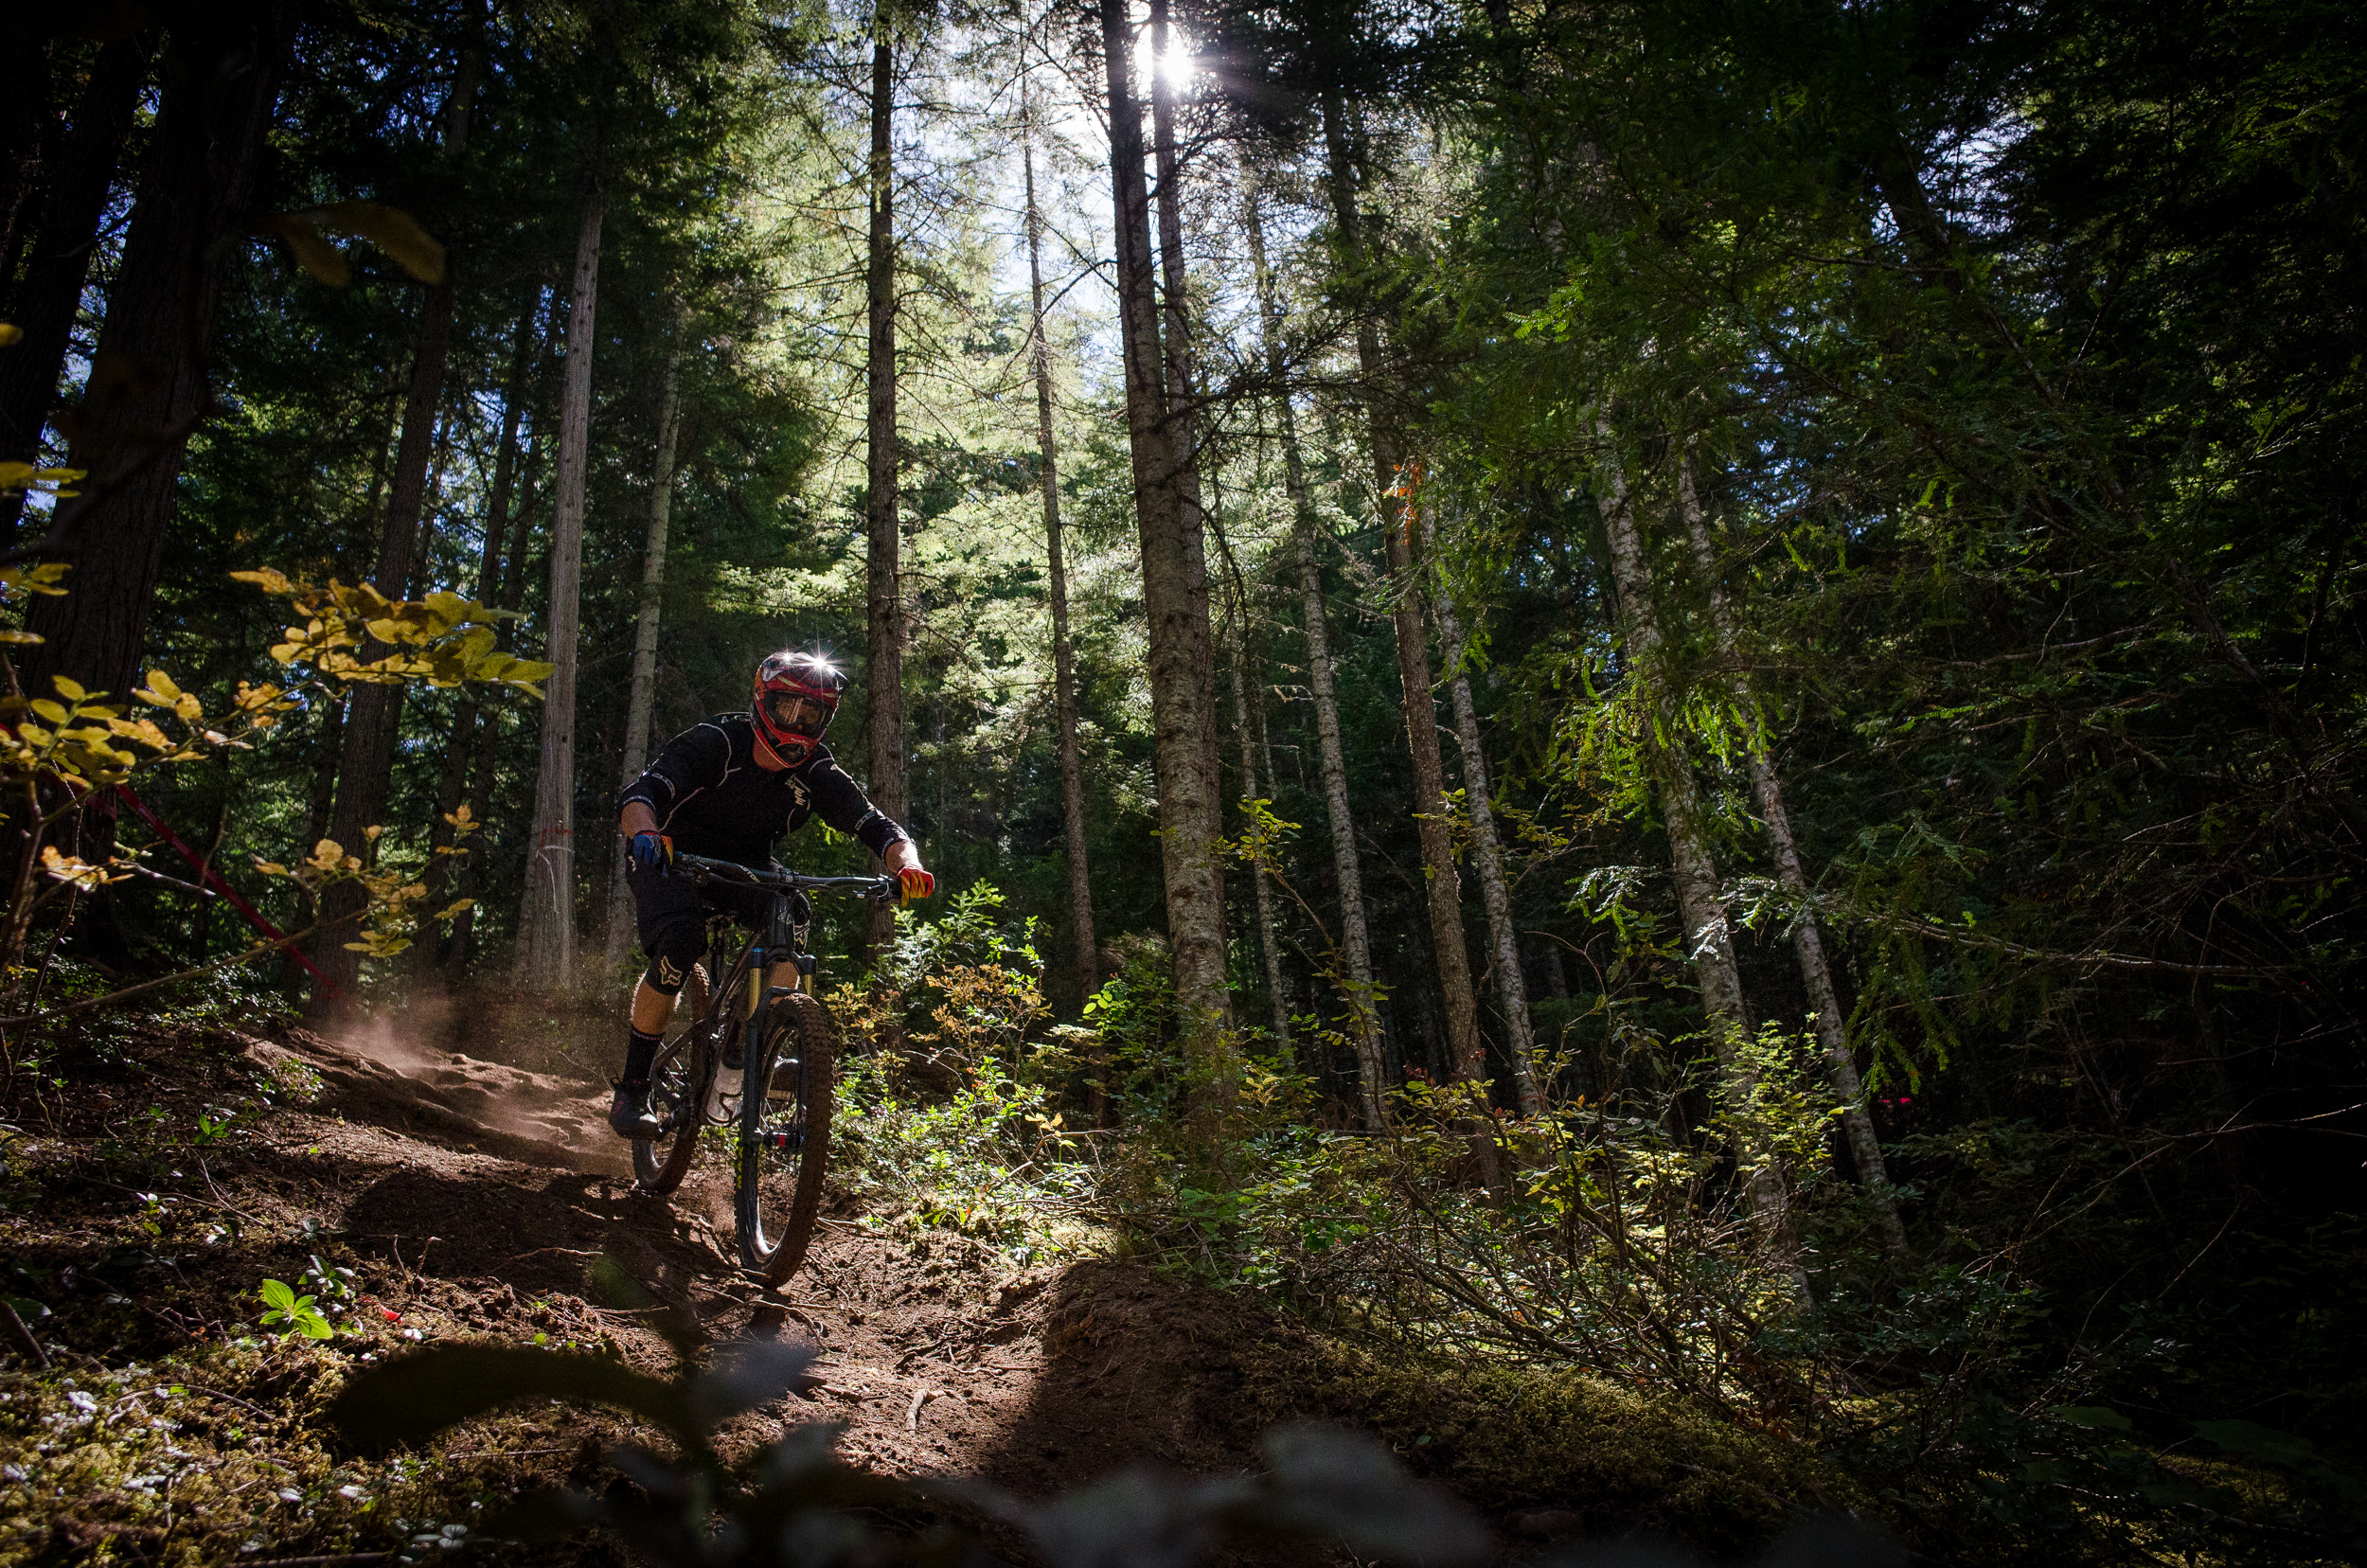 A racer practicing Stage 1 of the 2015 Enduro World Series at Whistler in British Columbia. Photo: Max Whittaker/Element.ly.